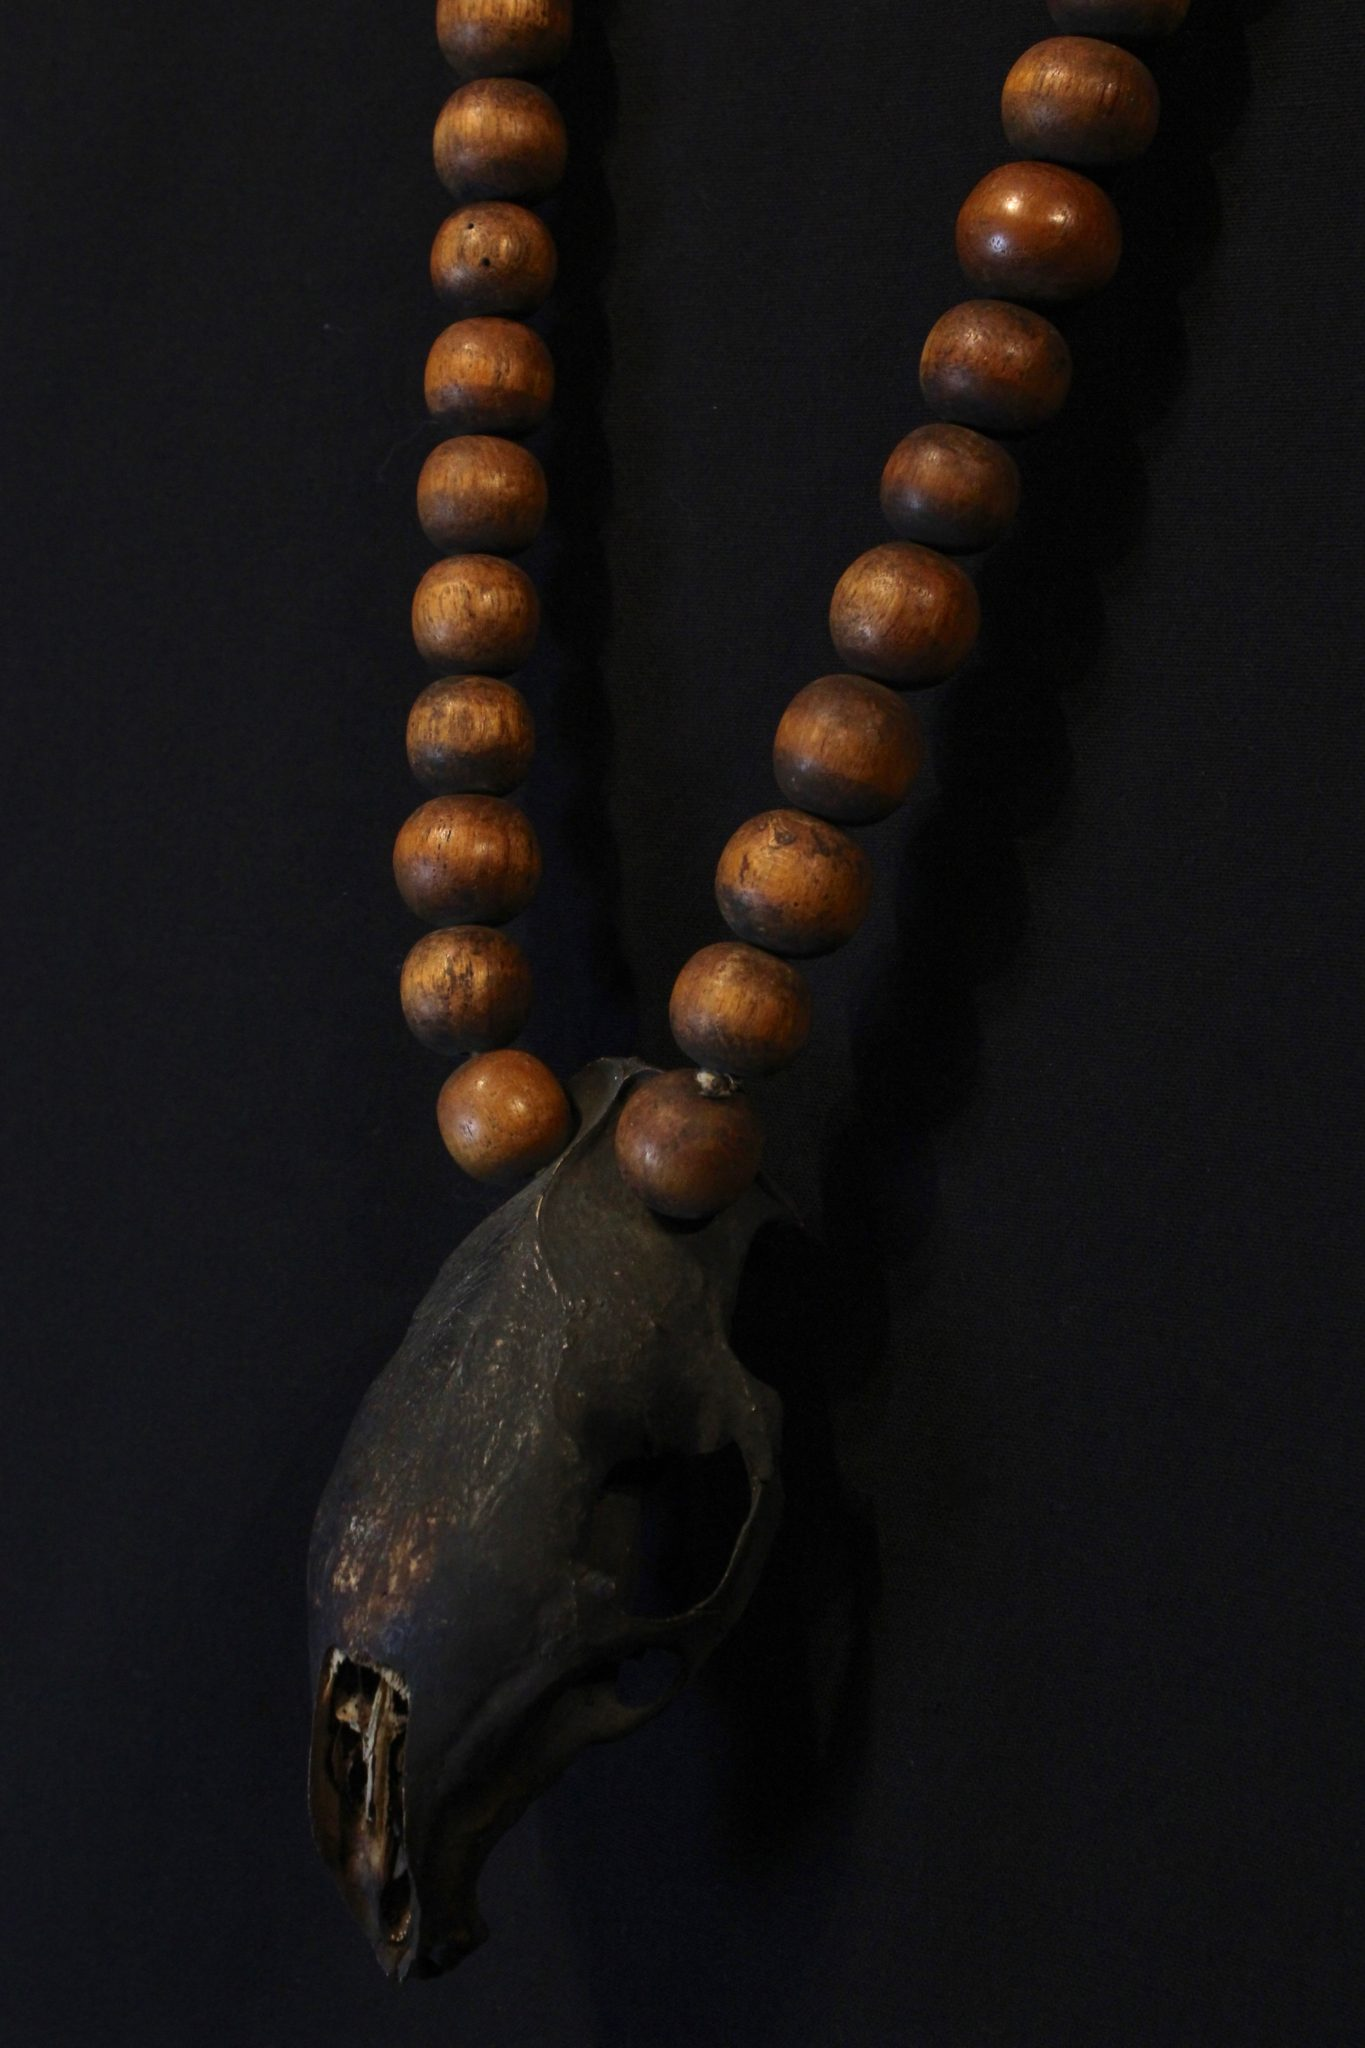 "Skull Necklace Kalimantan, Borneo, Indonesia, Dayak tribe, Early 20th c, Wooden Beads, Rodent Skull, darkened with soot. Worn for healing and protection rituals 17 ½"" x 2 ¾"" x 1 ¾"", $450."